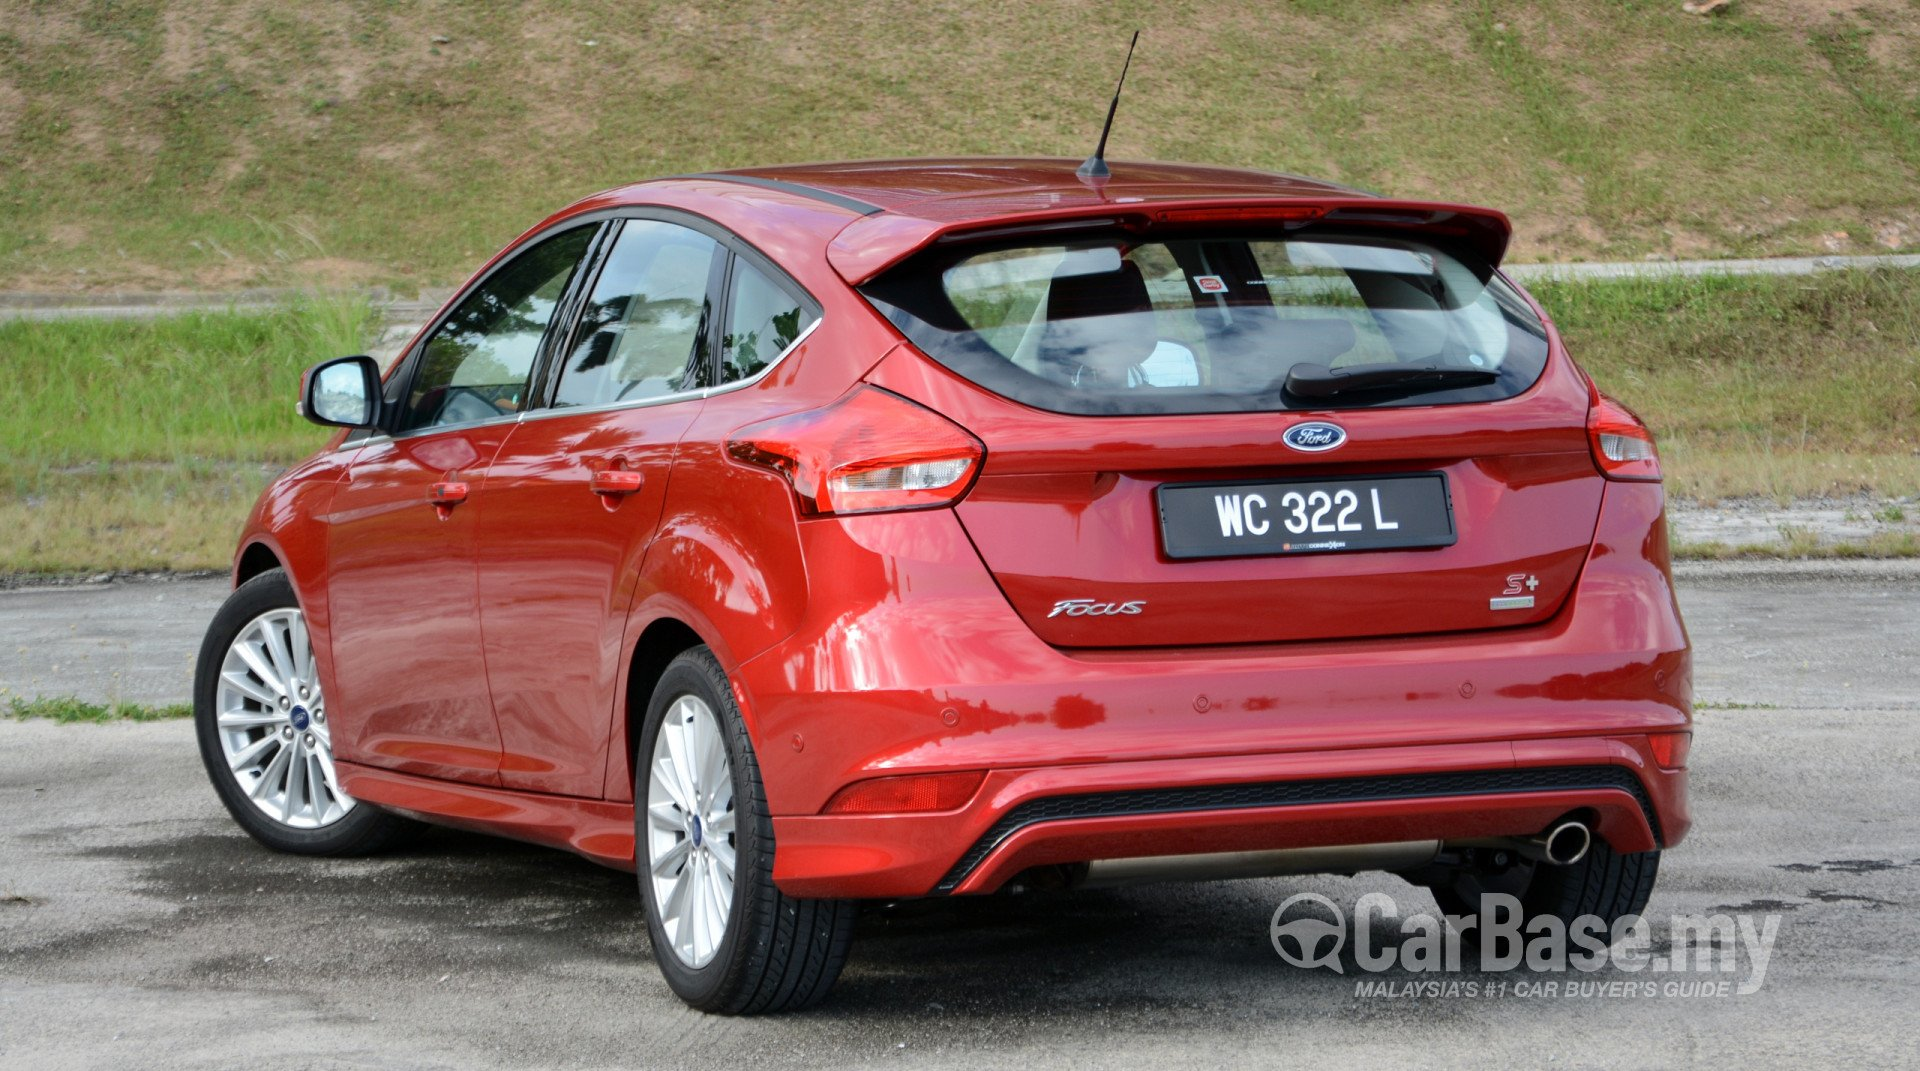 Ford Focus Mk3 C346 Fl 2016 Exterior Image 27976 In Malaysia Reviews Specs Prices